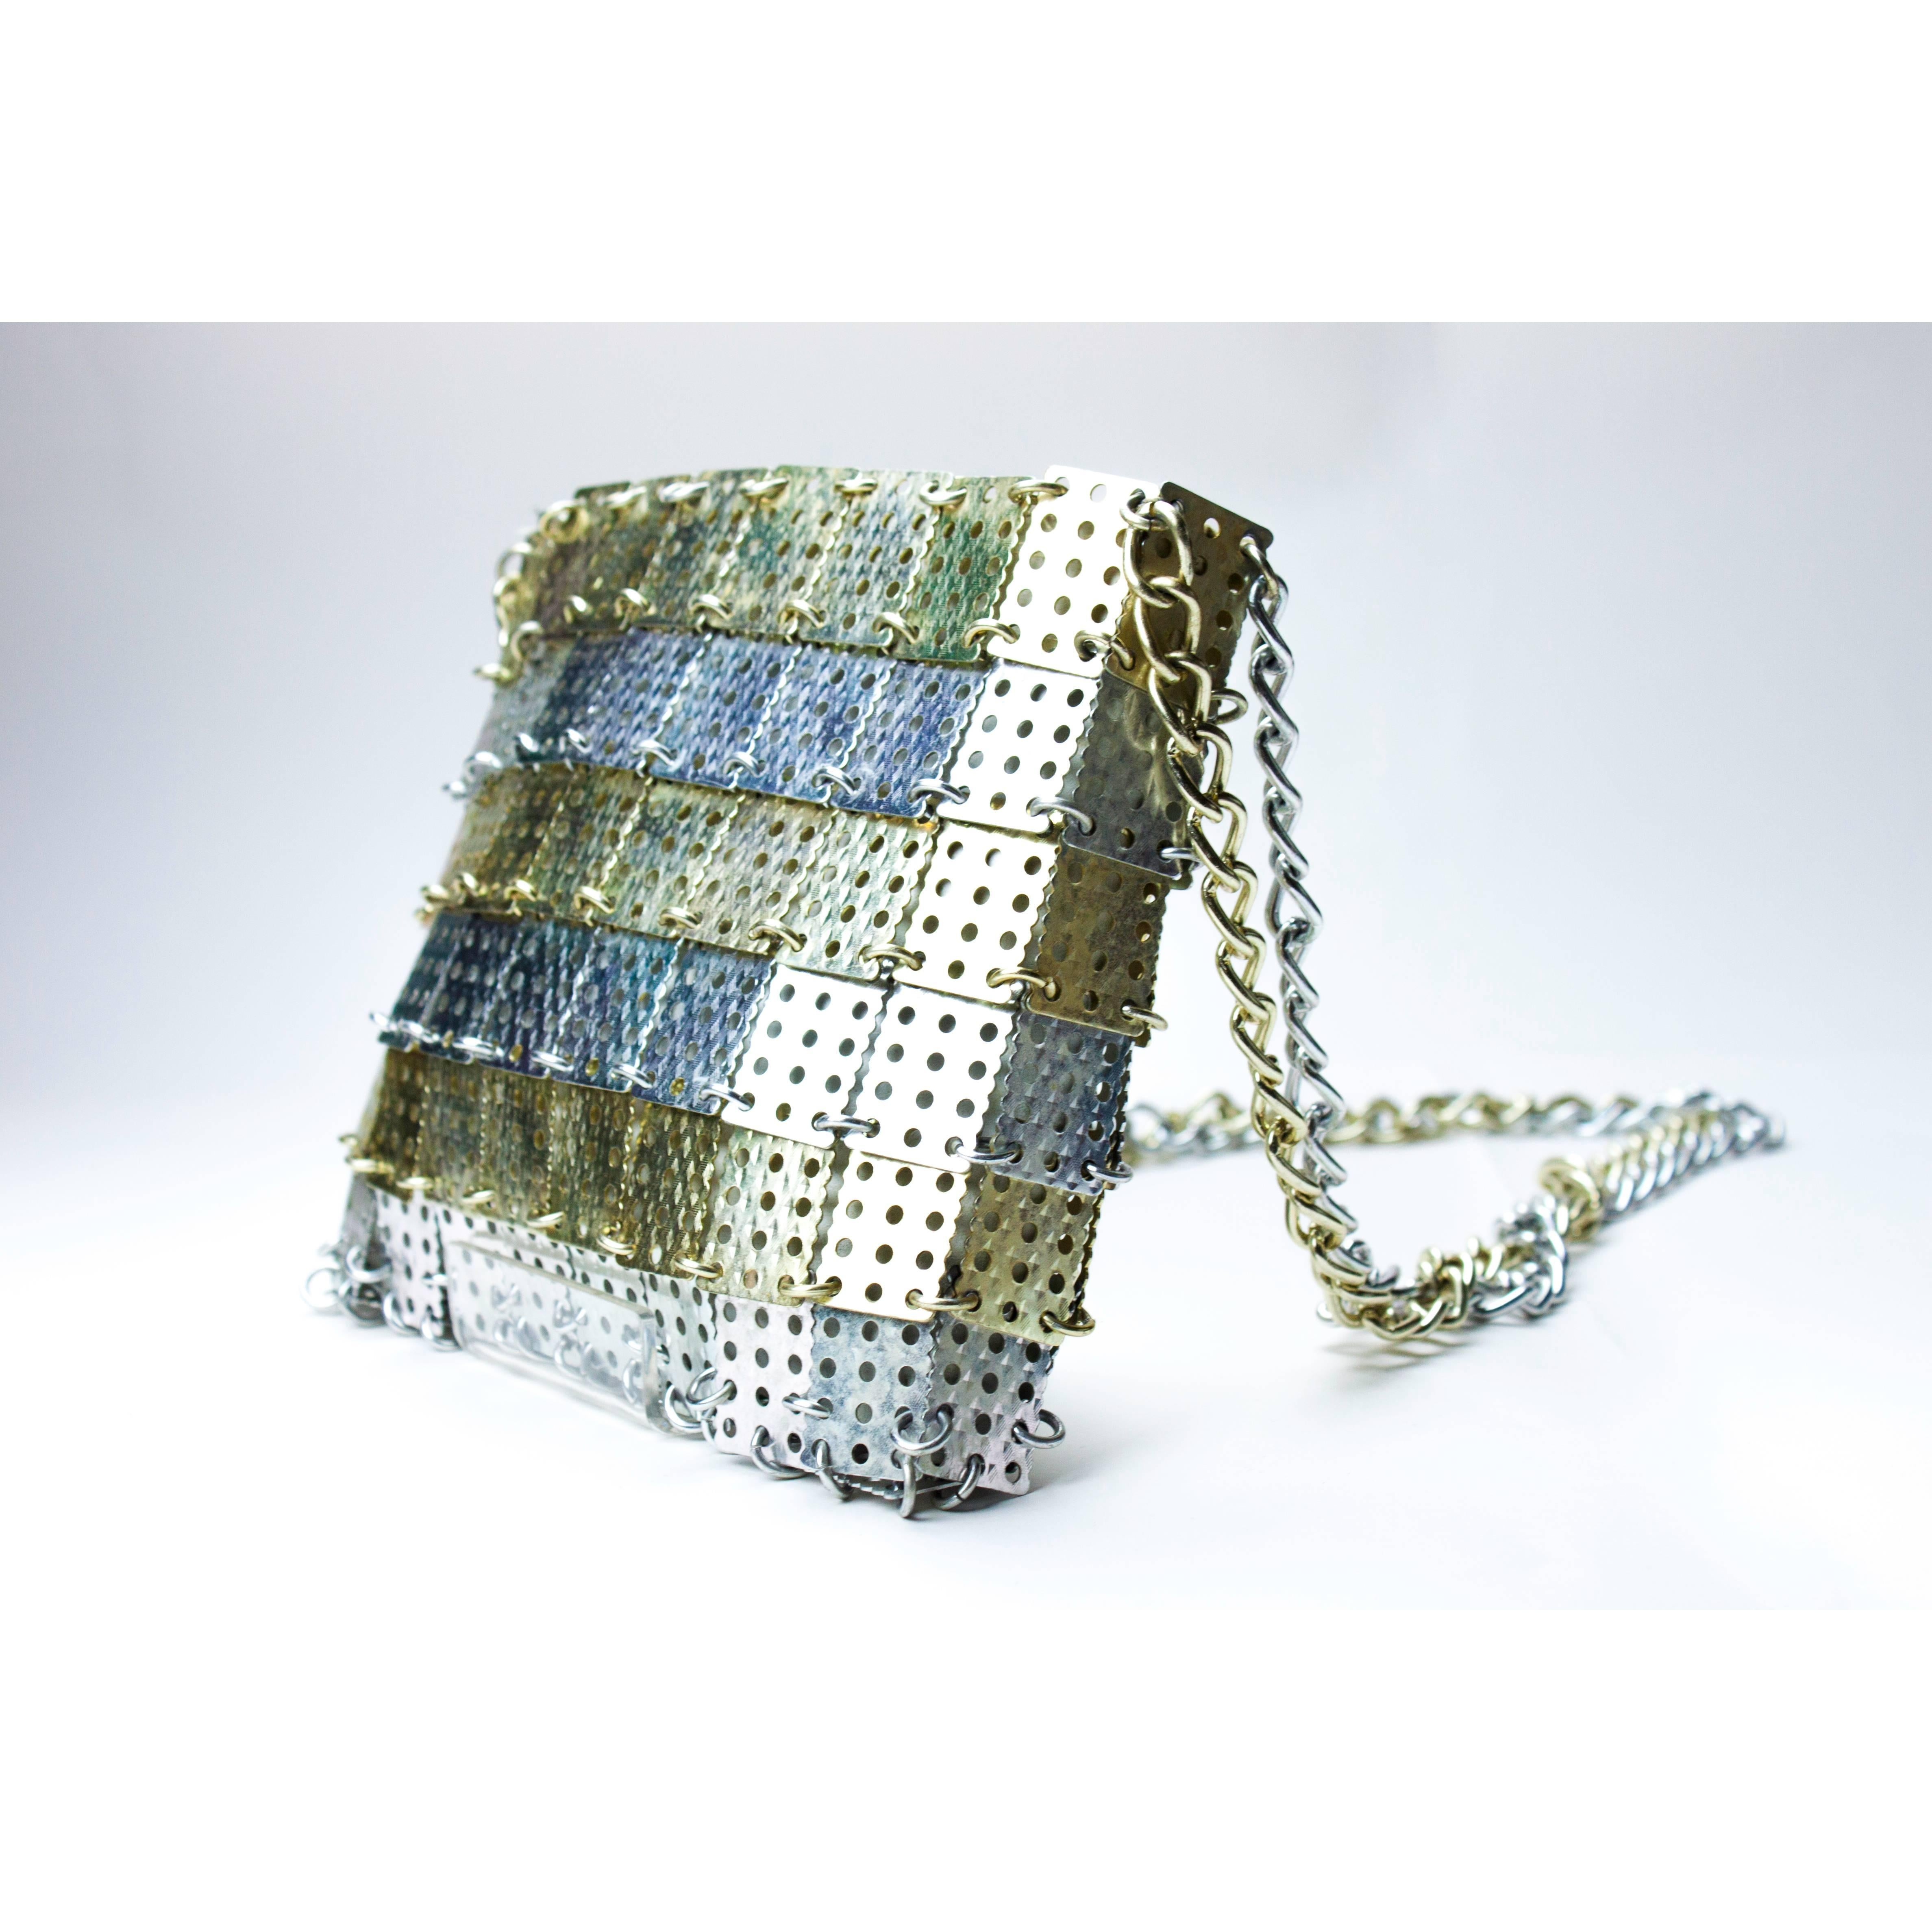 Paco Rabanne For Walberg Gold And Silver Discs Bag, Circa 1960